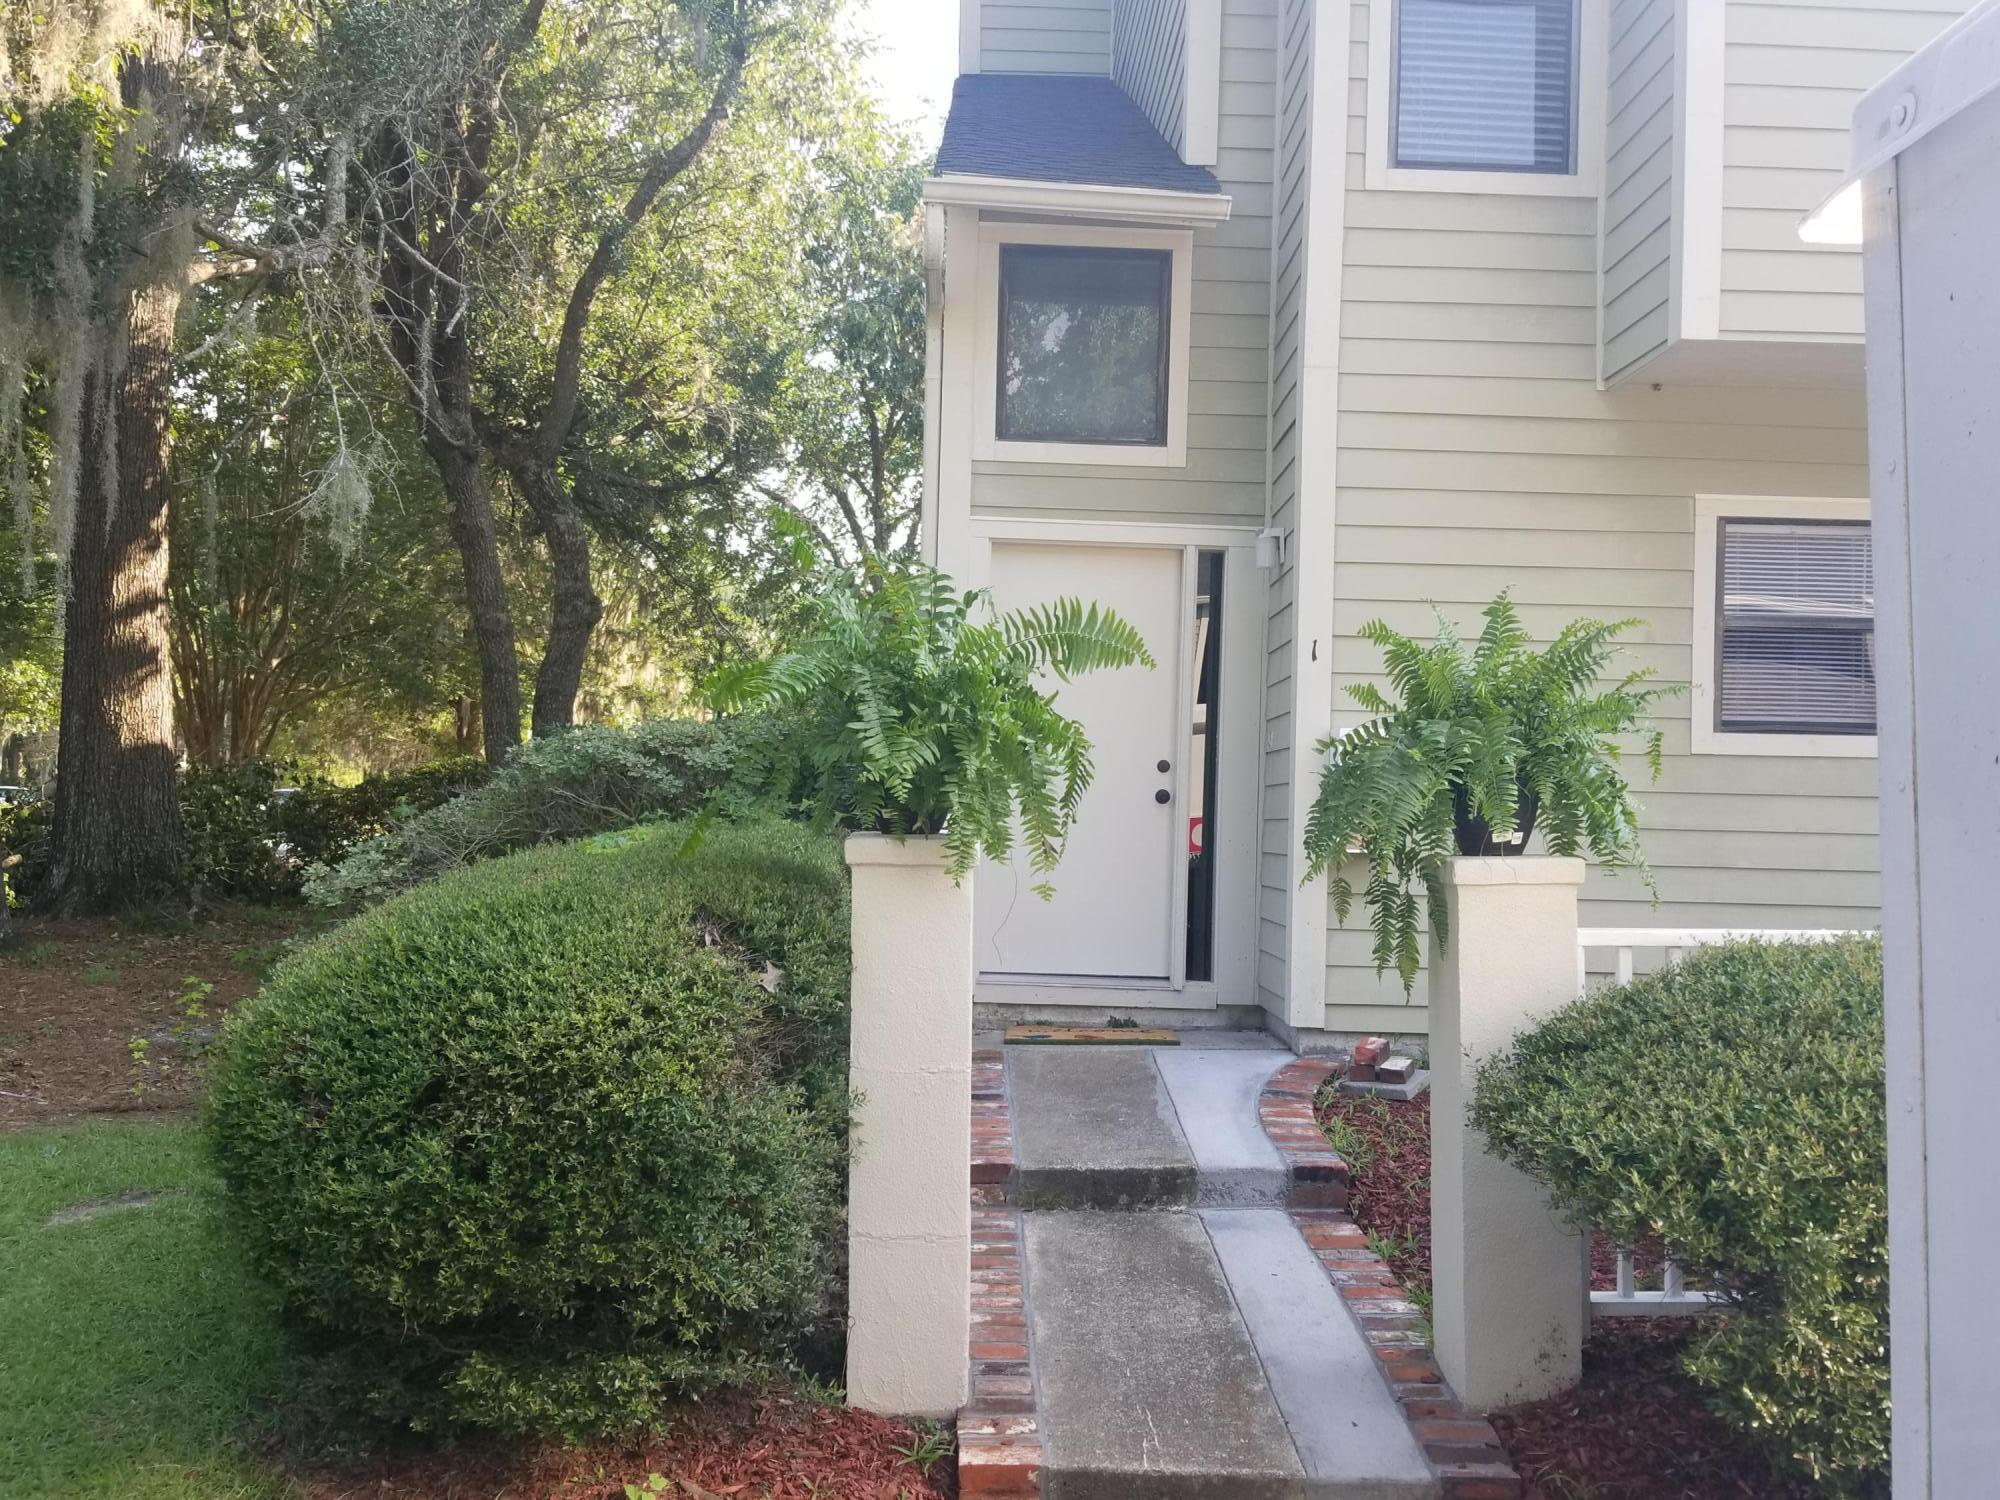 Photo of 2314 Treescape Dr, Charleston, SC 29414